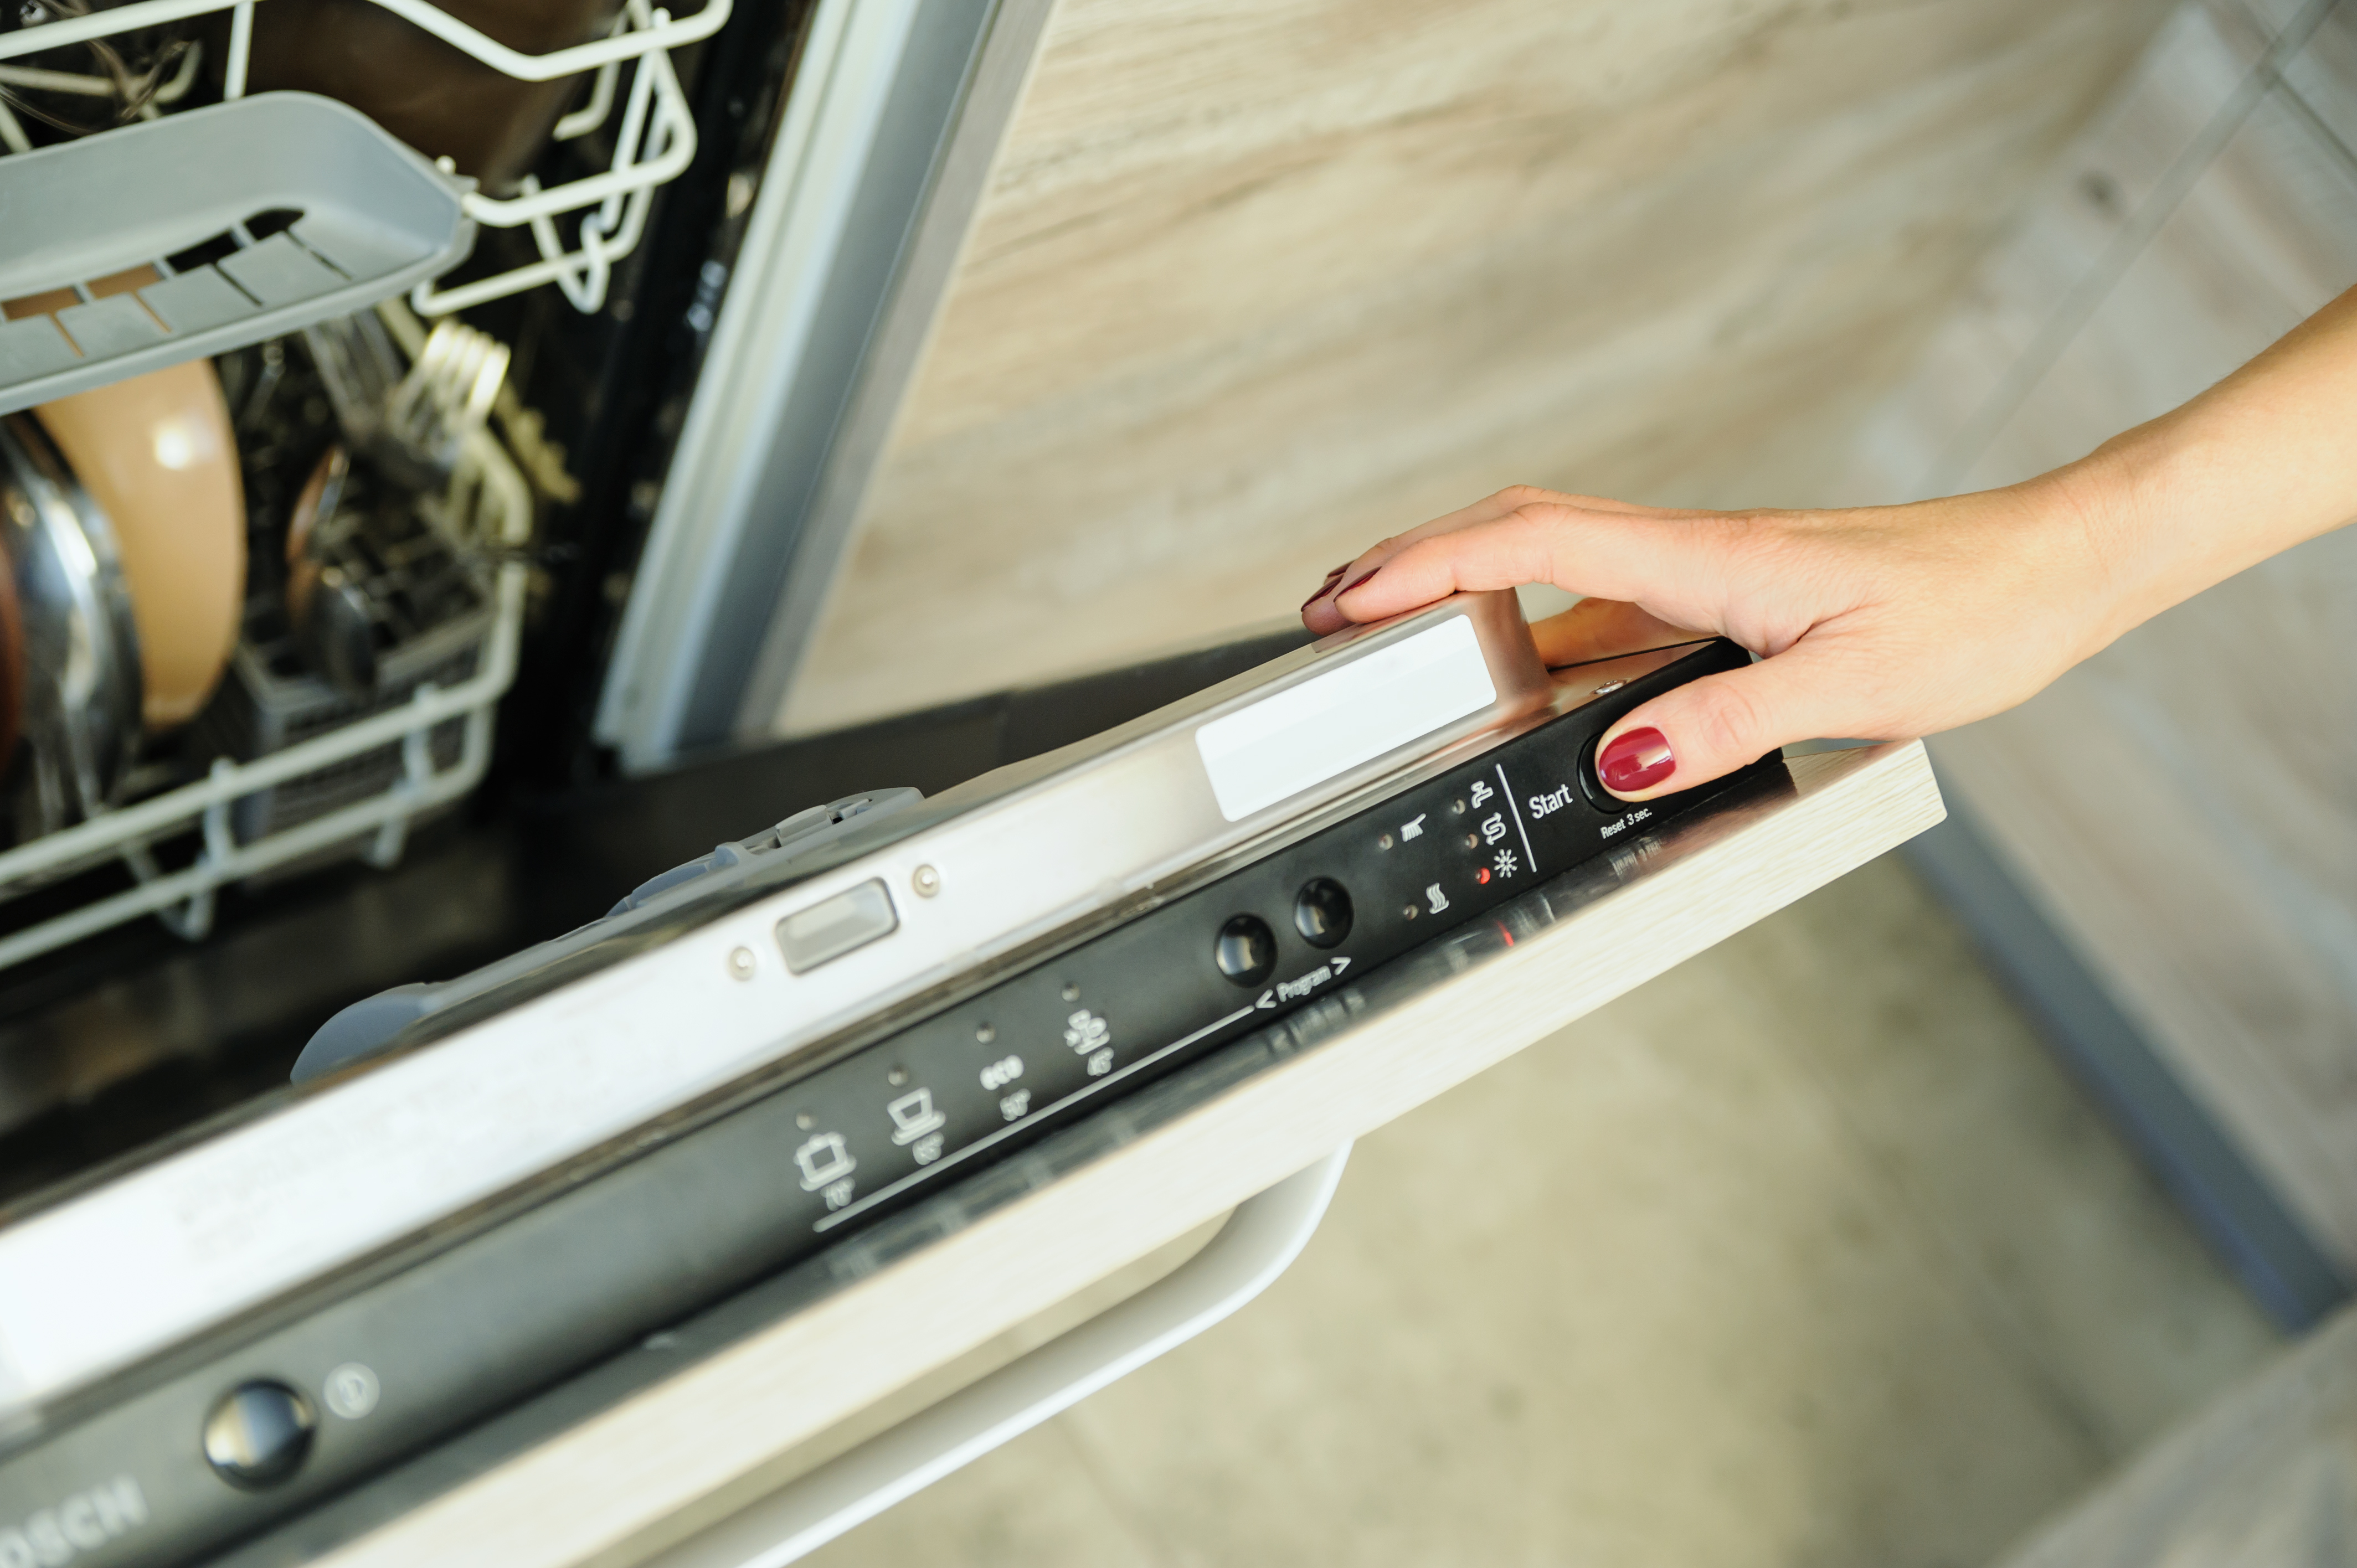 Common Dishwasher Problems and Solutions - Glotech Repairs